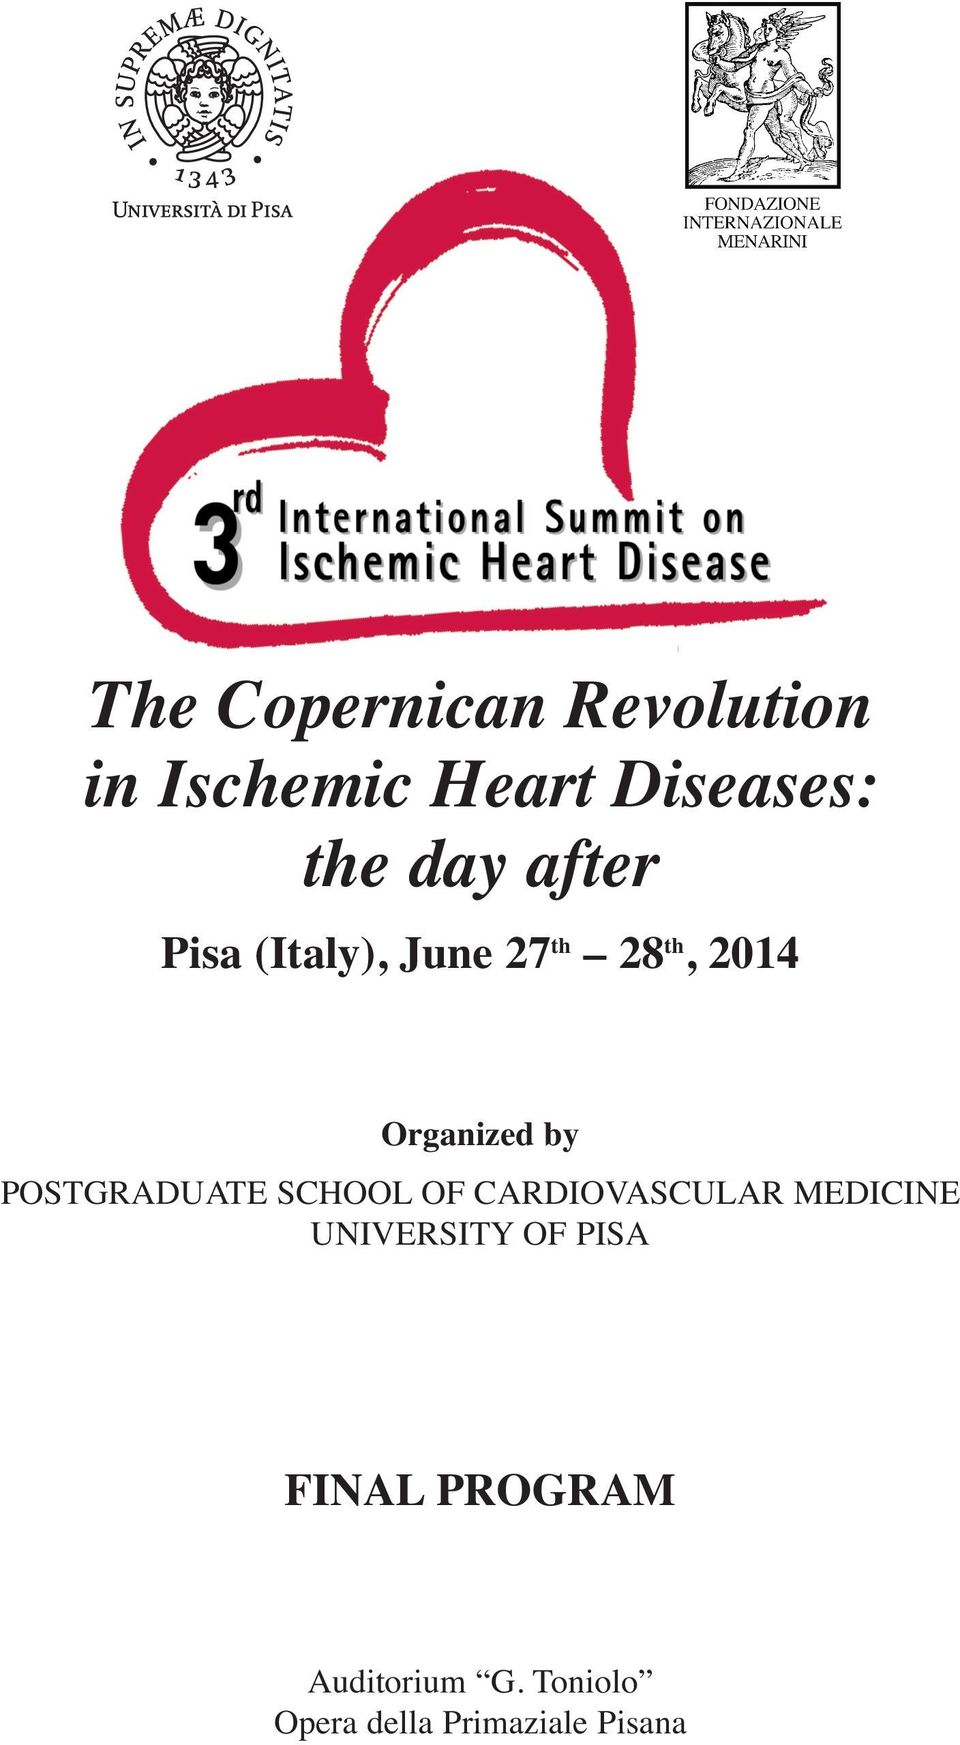 POSTGRADUATE SCHOOL OF CARDIOVASCULAR MEDICINE UNIVERSITY OF